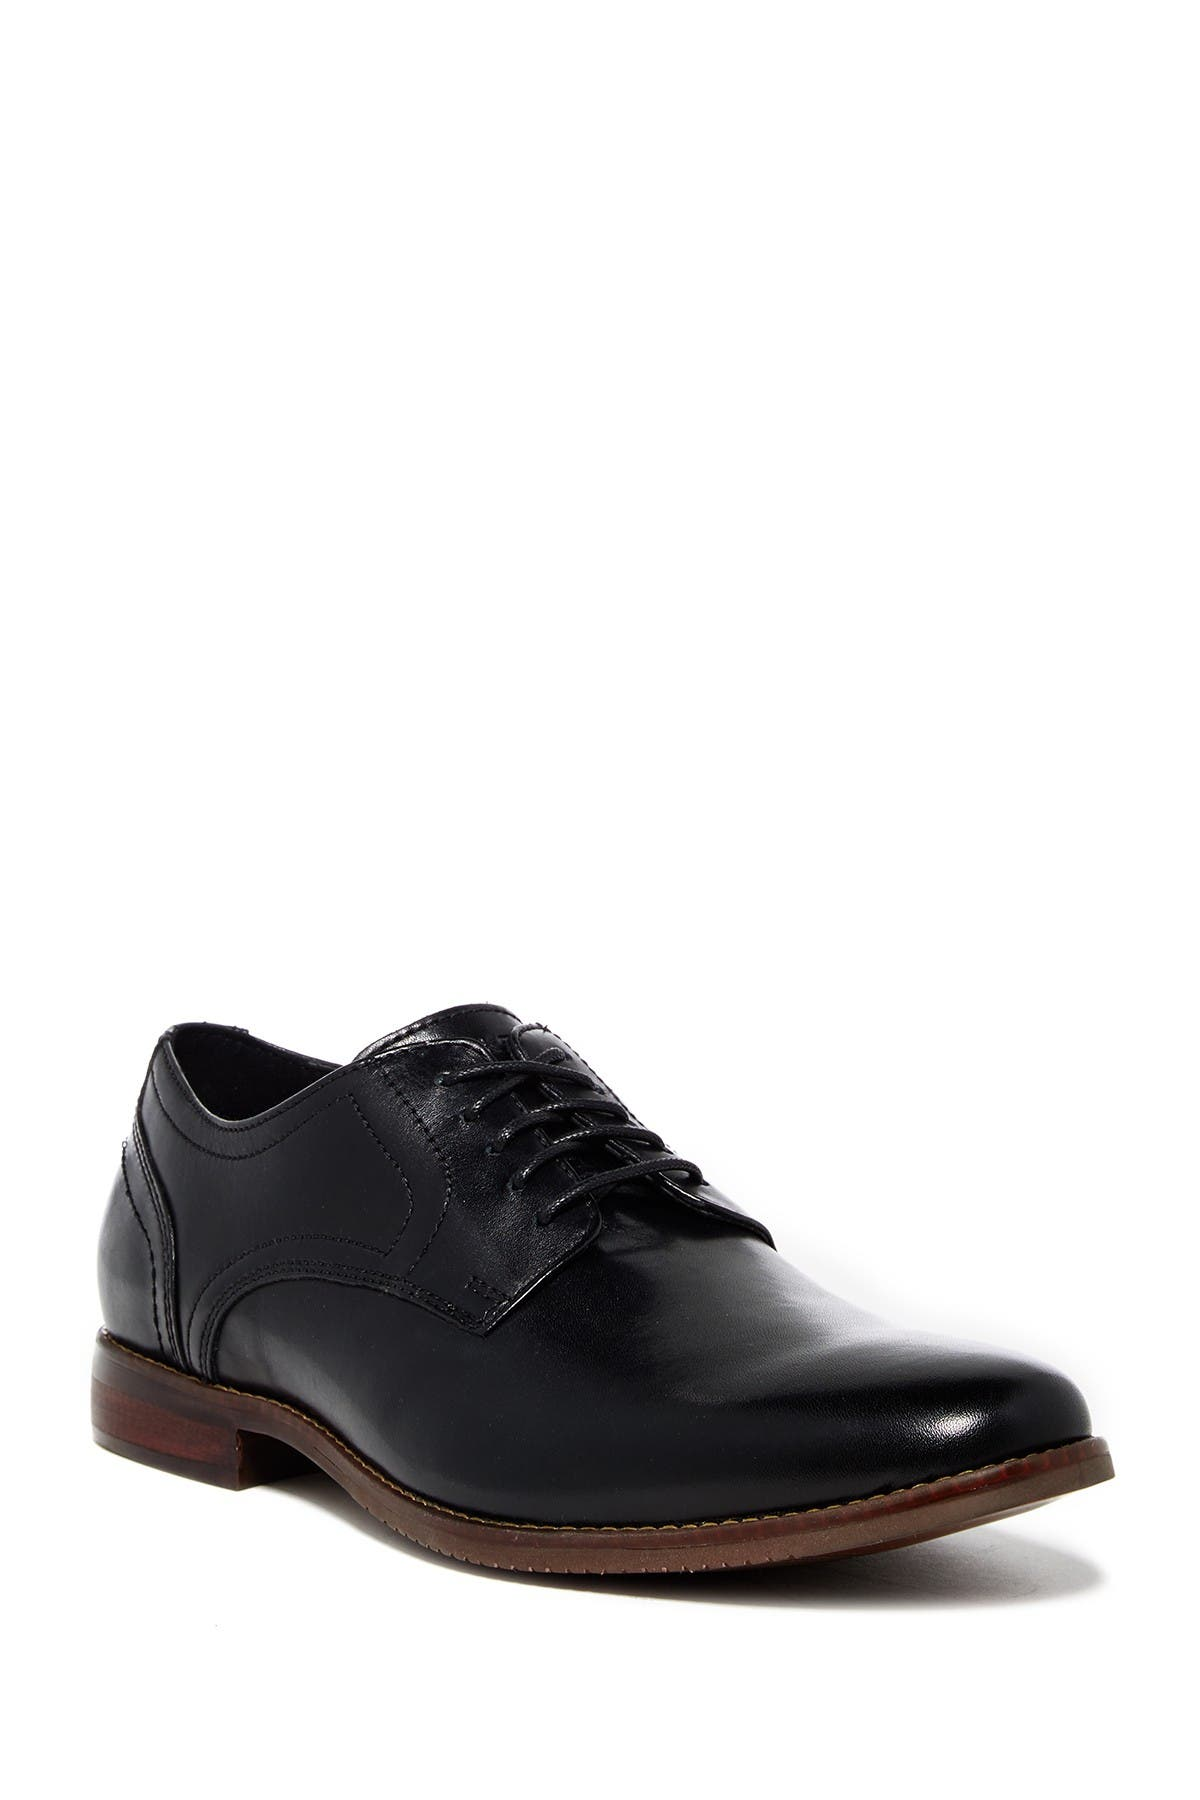 Image of Rockport Leather Plain Toe Derby - Wide Width Available